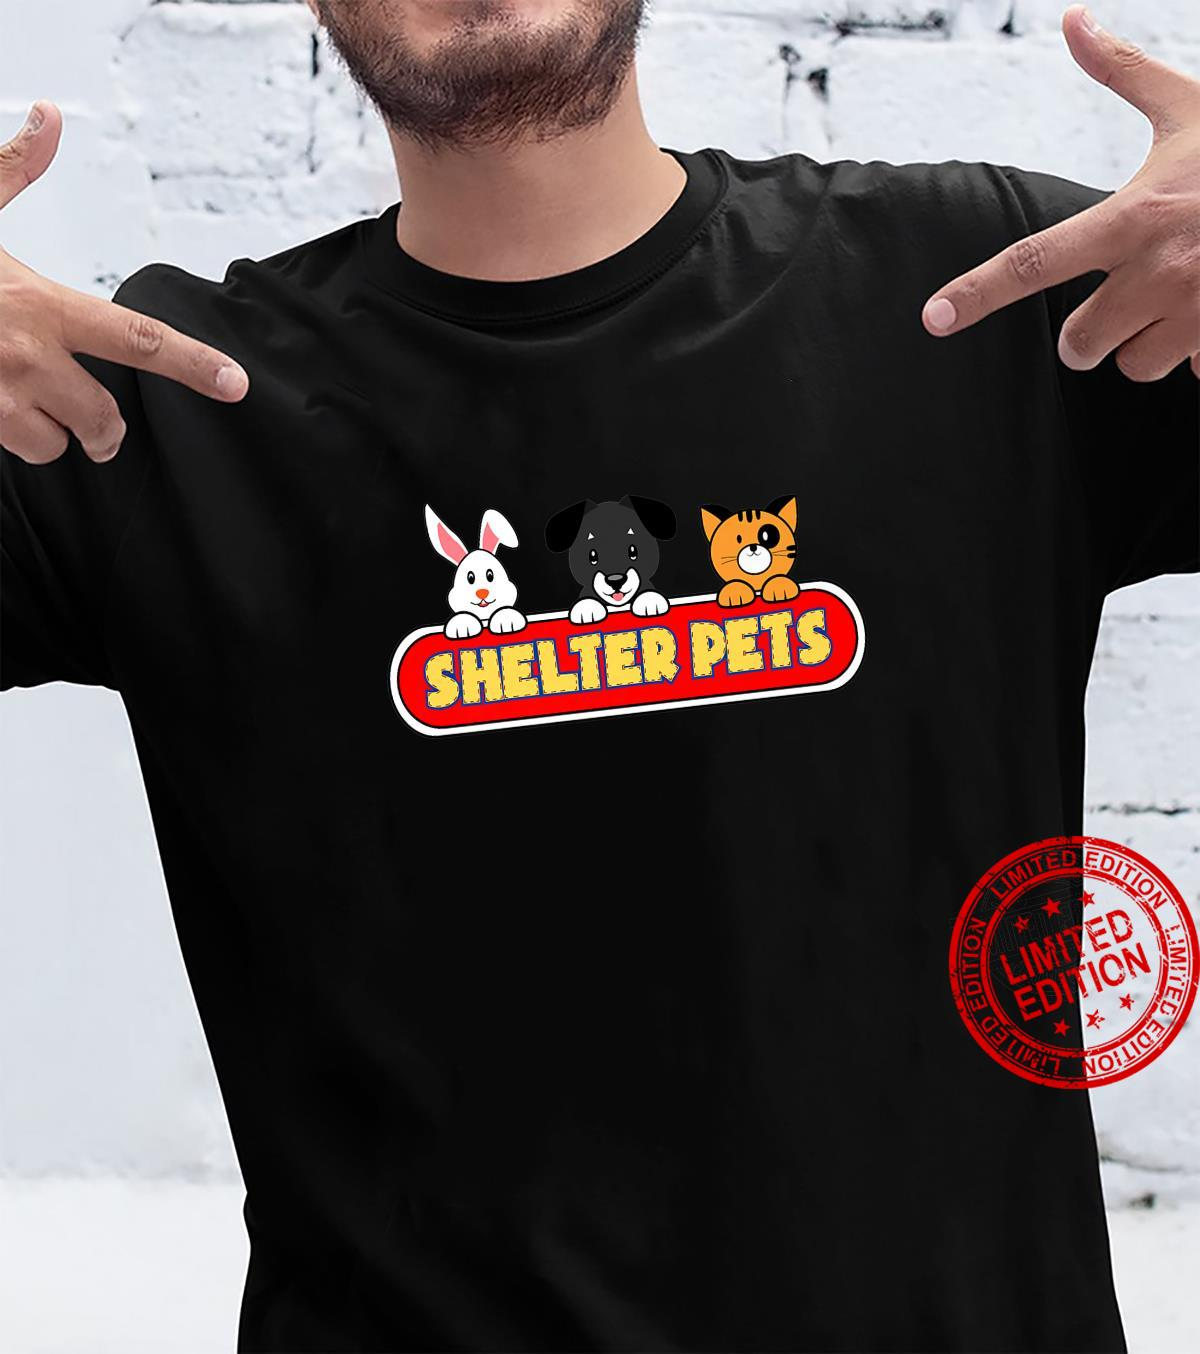 Shelter Pets for Dog Cat and Animal Rescues Adopt Don't Shop Shirt